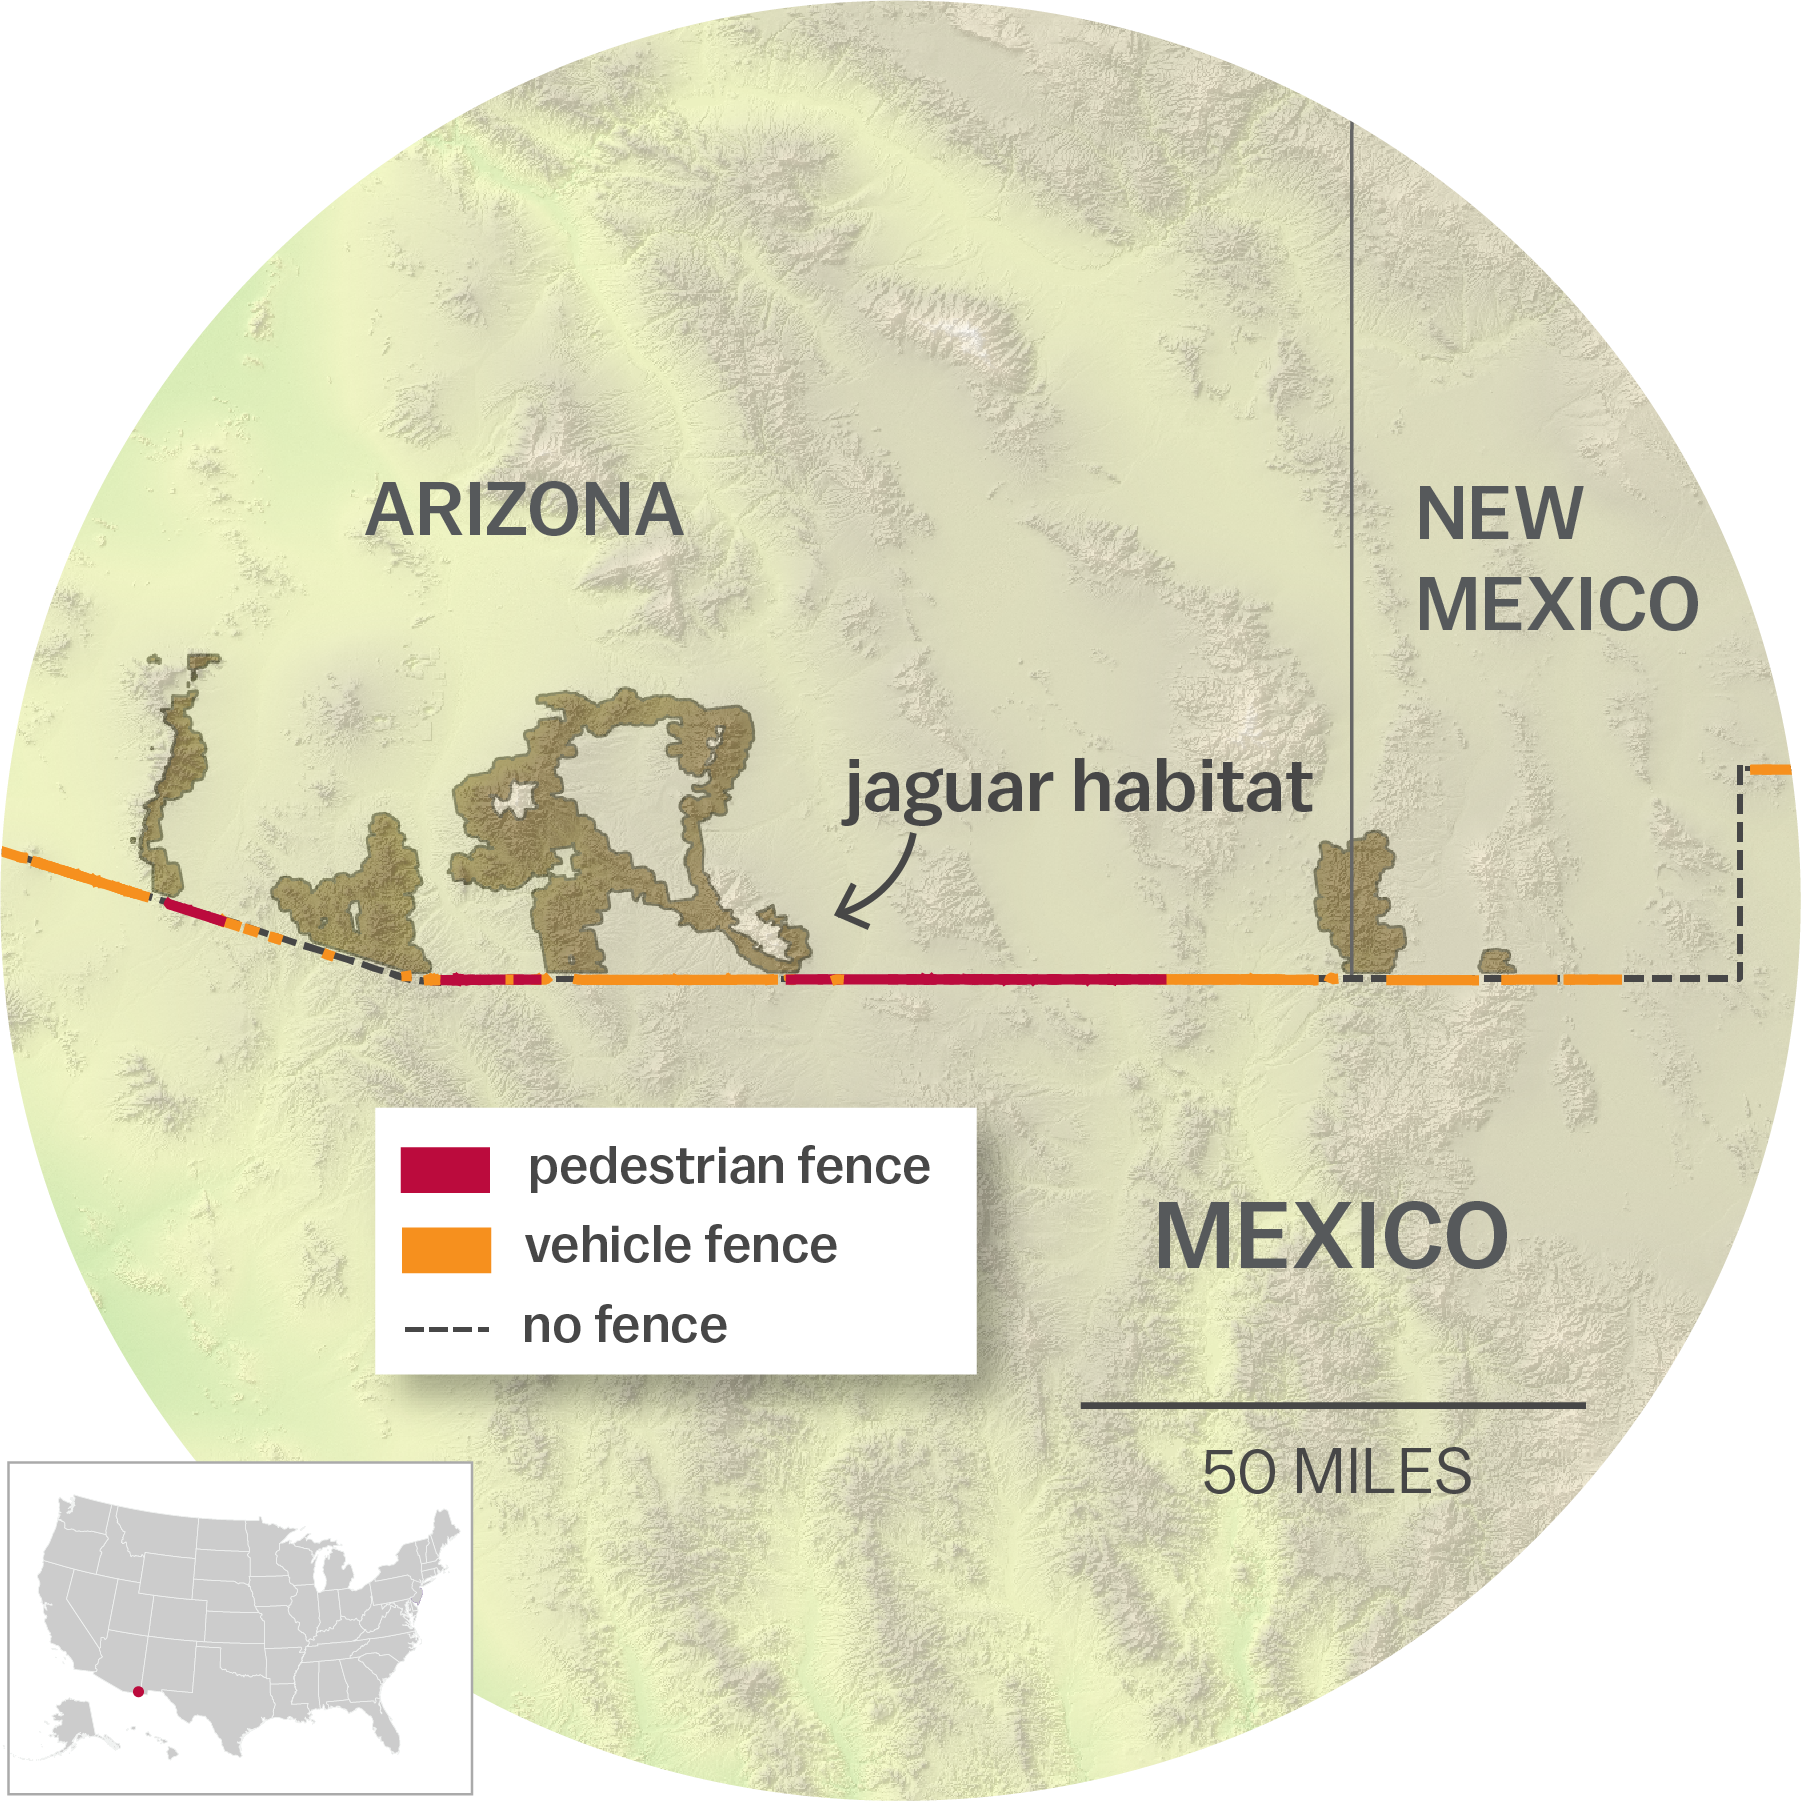 Map Of Jaguar Habitat In Arizona And New Mexico Along The Us Mexico Border Wall